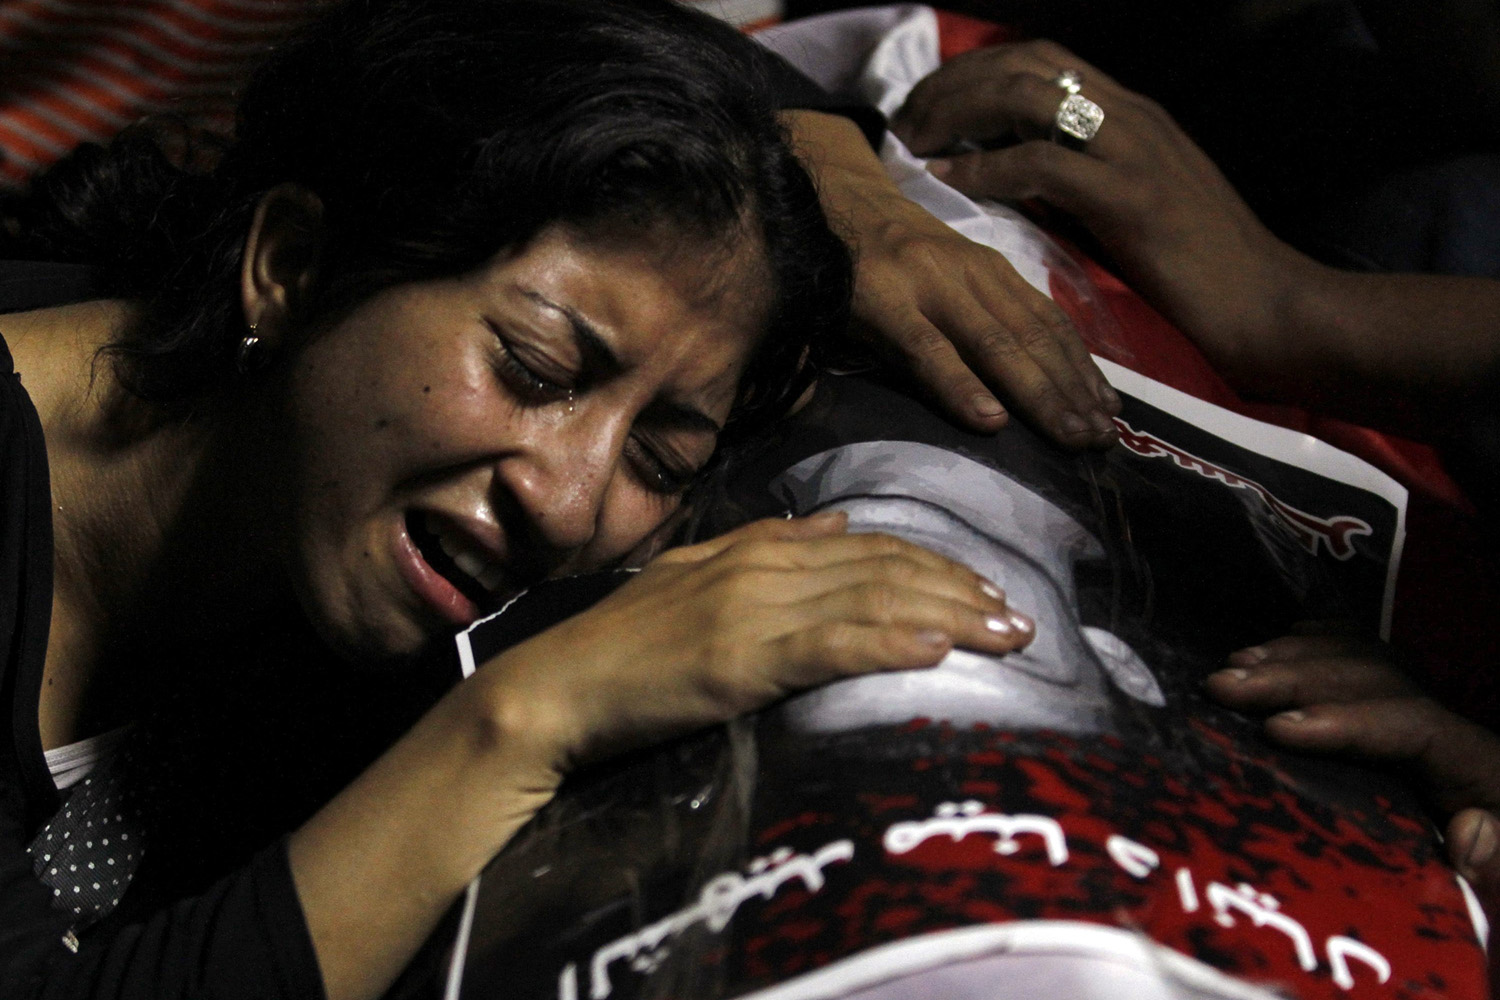 October 10, 2011. An Egyptian Christian woman mourns on the coffin of Coptic Christian Mina Daniel, who was killed during clashes with soldiers and riot police, at the morgue of the Coptic Hospital in Cairo.